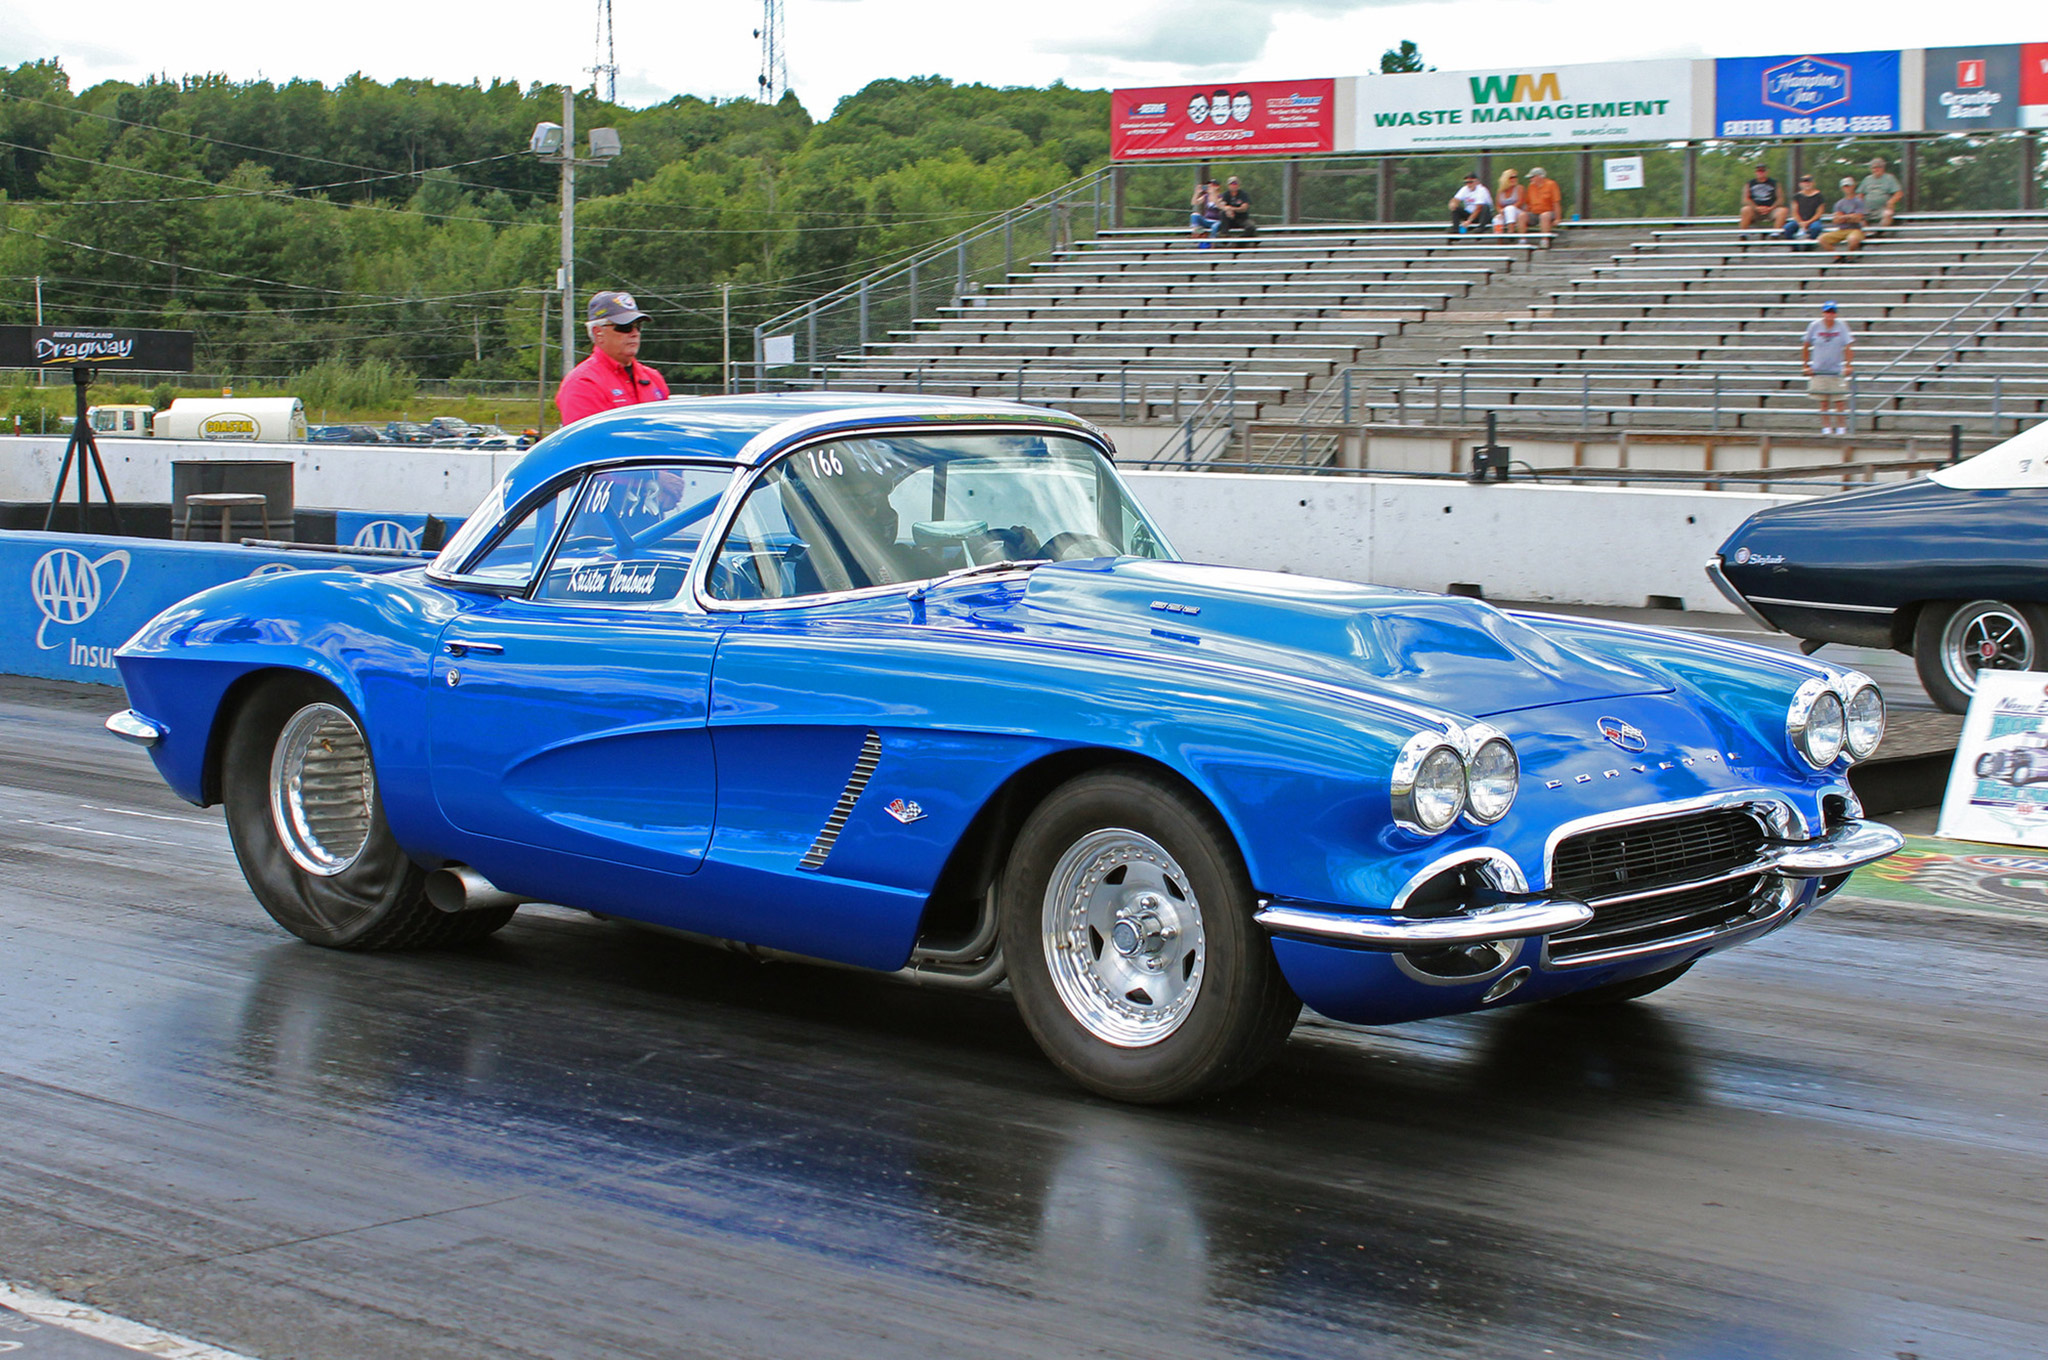 In Hot Rod Eliminator, Kristen Verdonck of Salem, New Hampshire, went through two rounds of eliminations with this beautiful mid-11-second 1962 Vette.